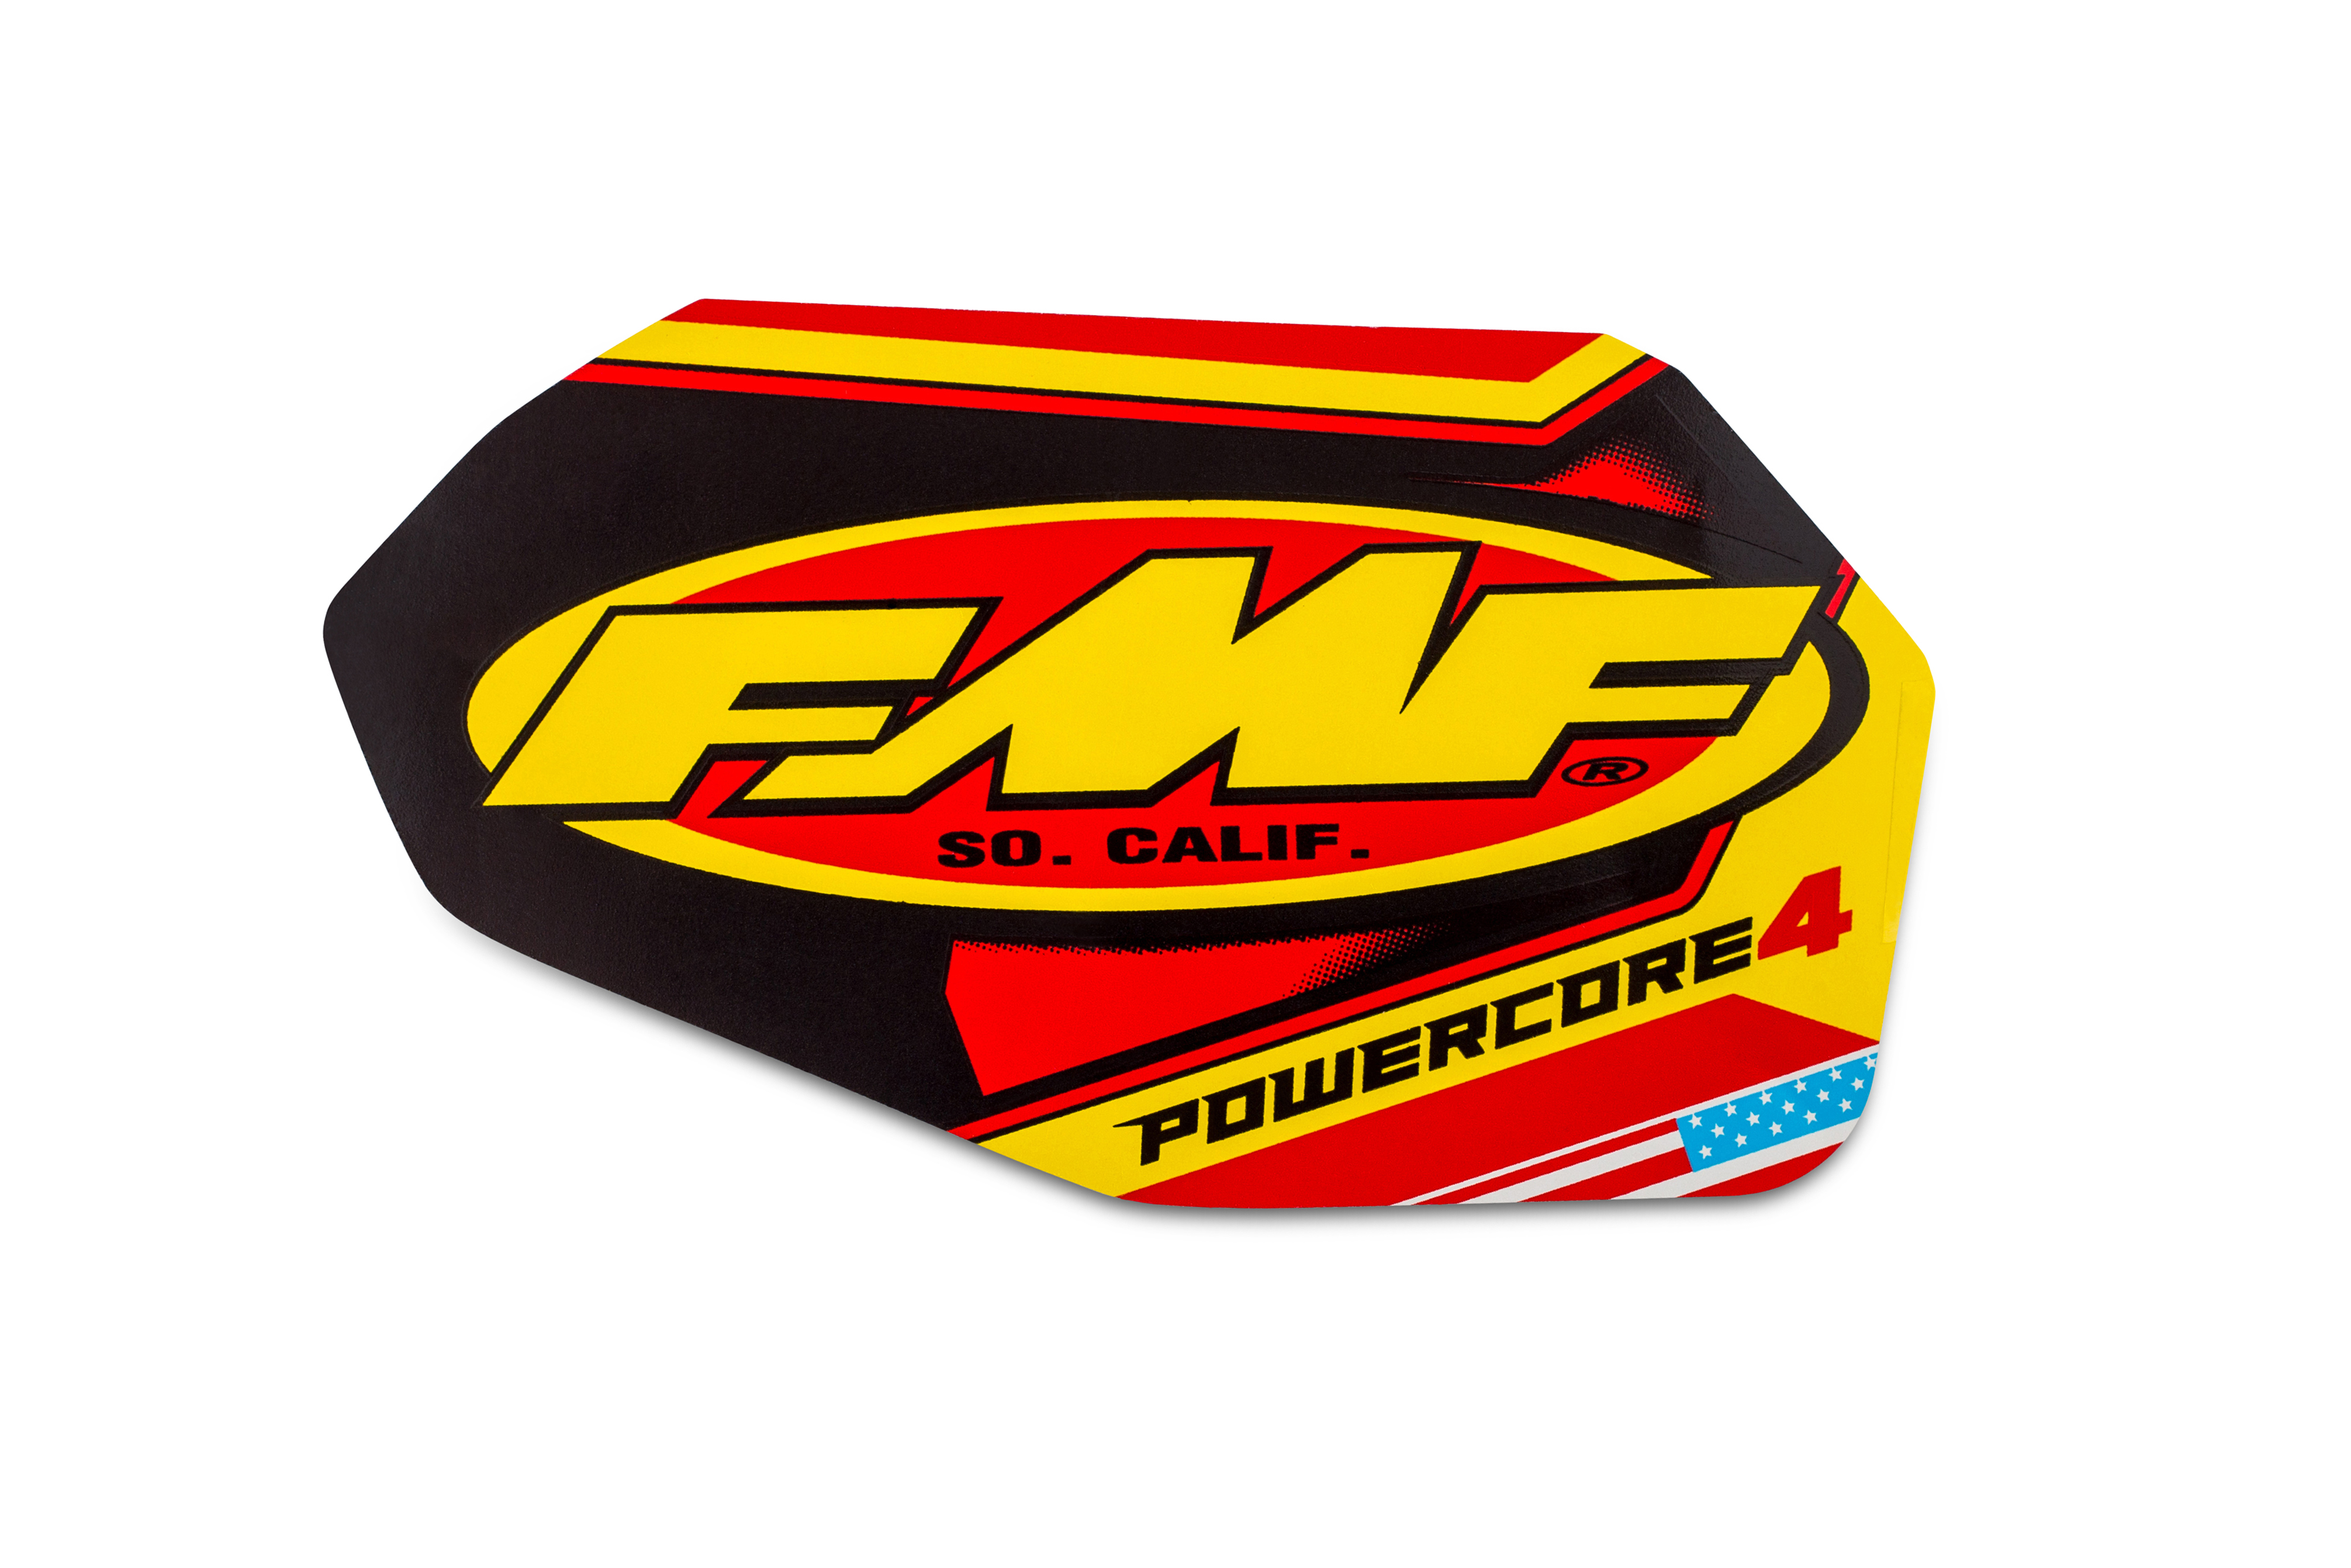 FMF P-CORE4 STRAIGHT 2-PART WRAP LOGO DECAL REPLACEMENT